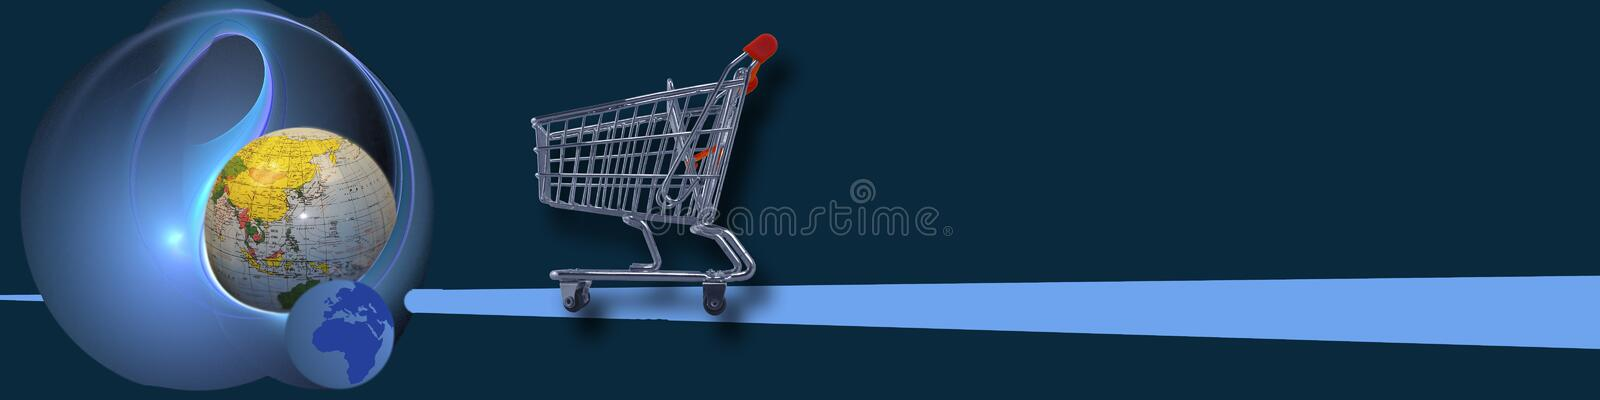 Banner World wide (e-) commerce. This header / banner is about metaphors meaning World wide business / e-commerce stock illustration